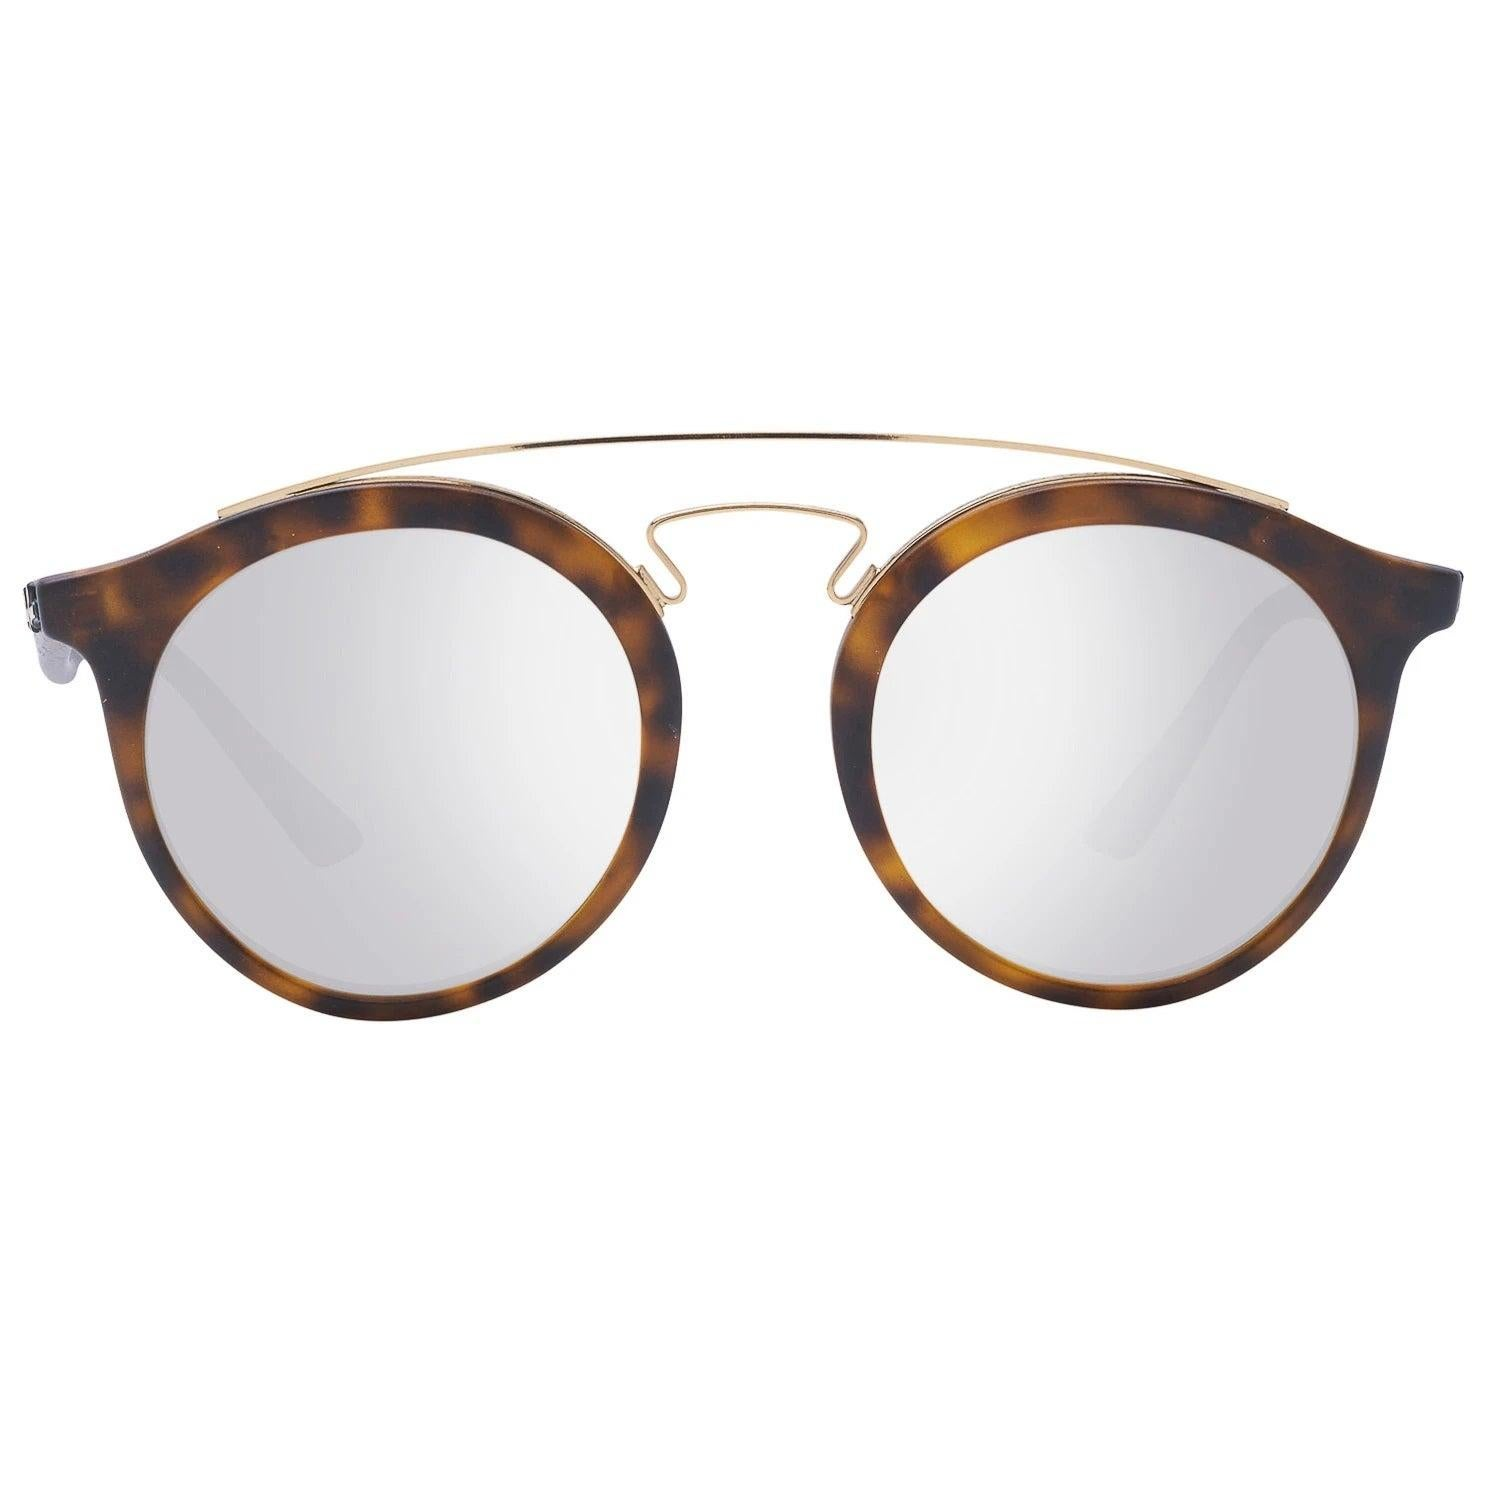 Ray-Ban Mint Unisex Brown Sunglasses RB4256 56609 49-14-138 mm